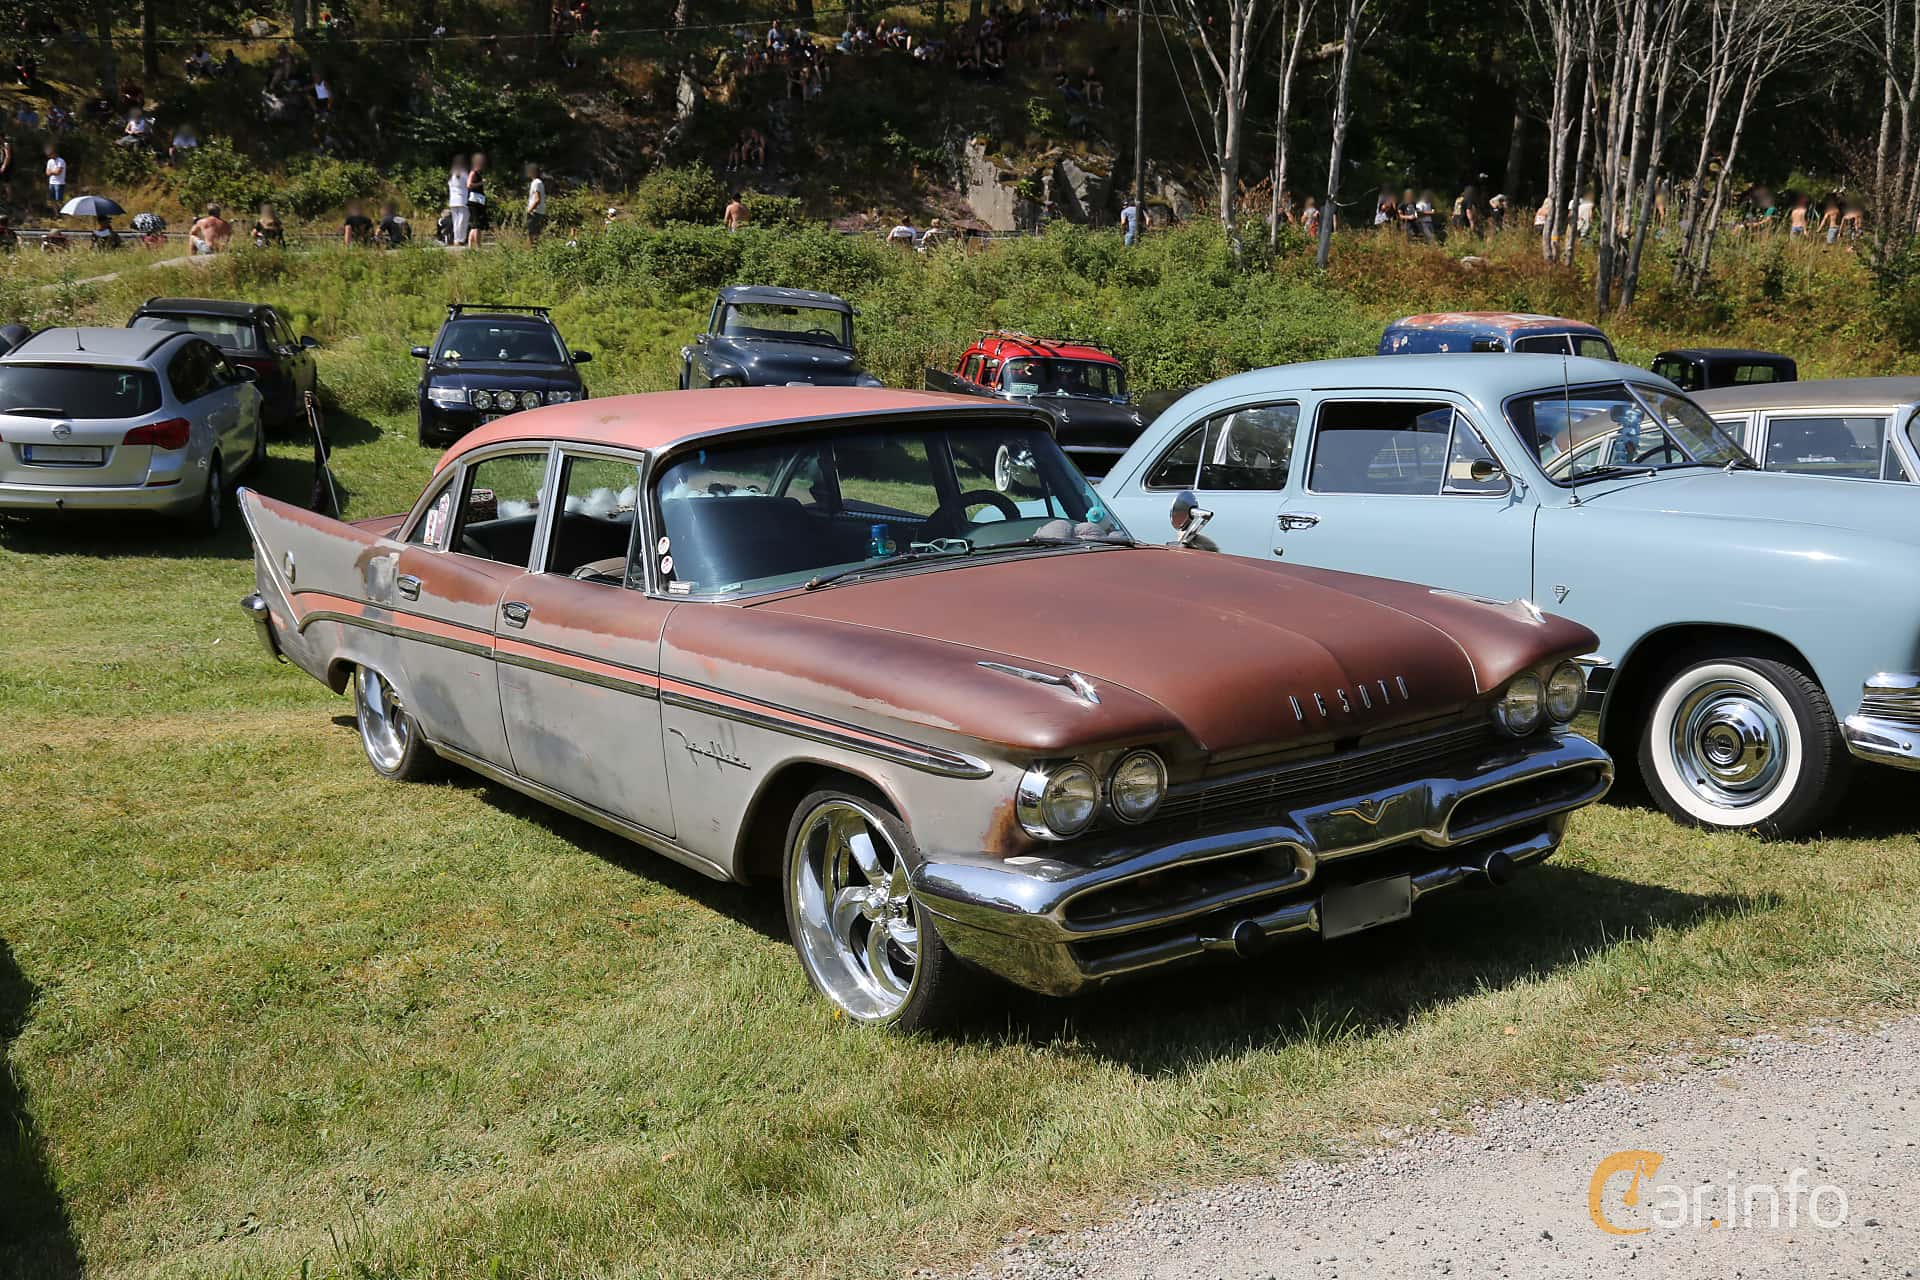 DeSoto Fireflite Sedan 6.3 V8 Automatic, 330hp, 1959 at A-bombers - Old Style Weekend Backamo 2019